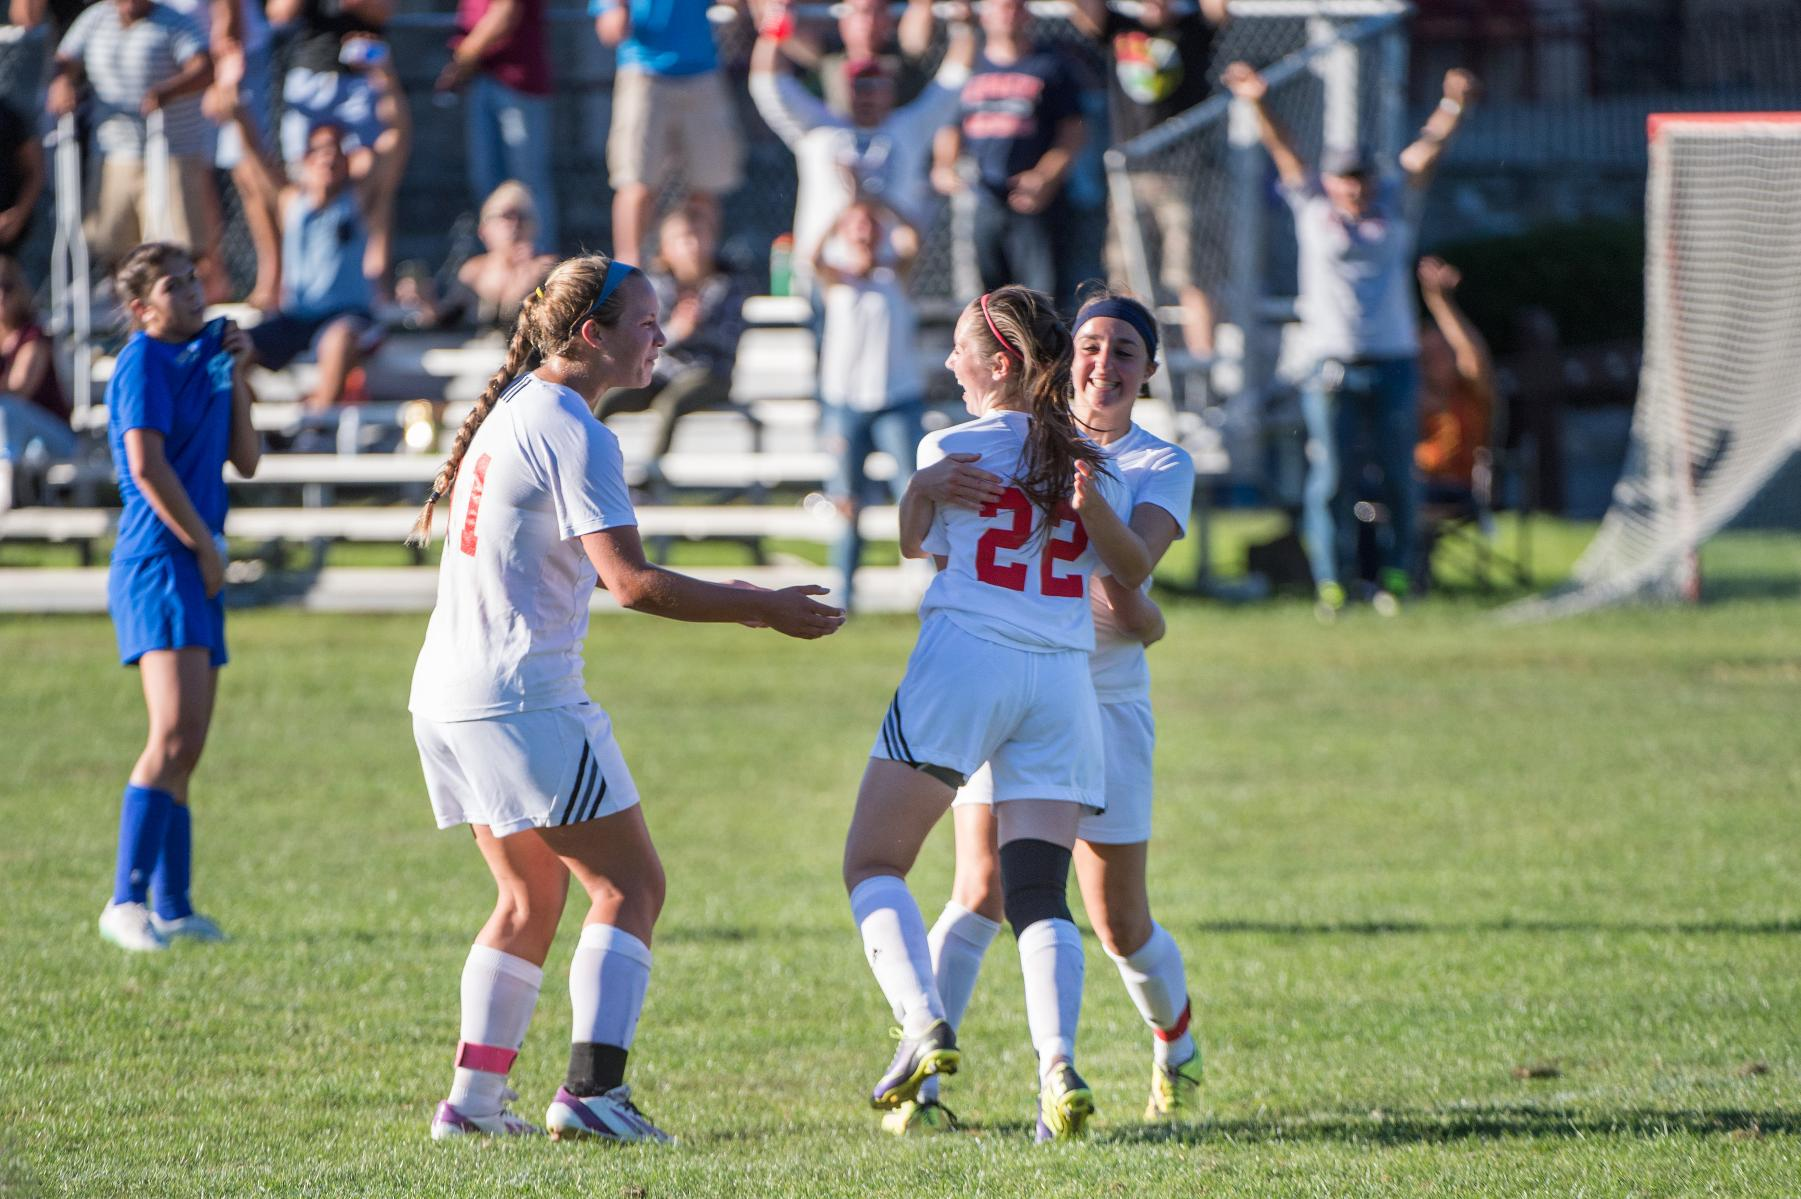 Marie-Guinter's overtime strike propels Warriors past Rams